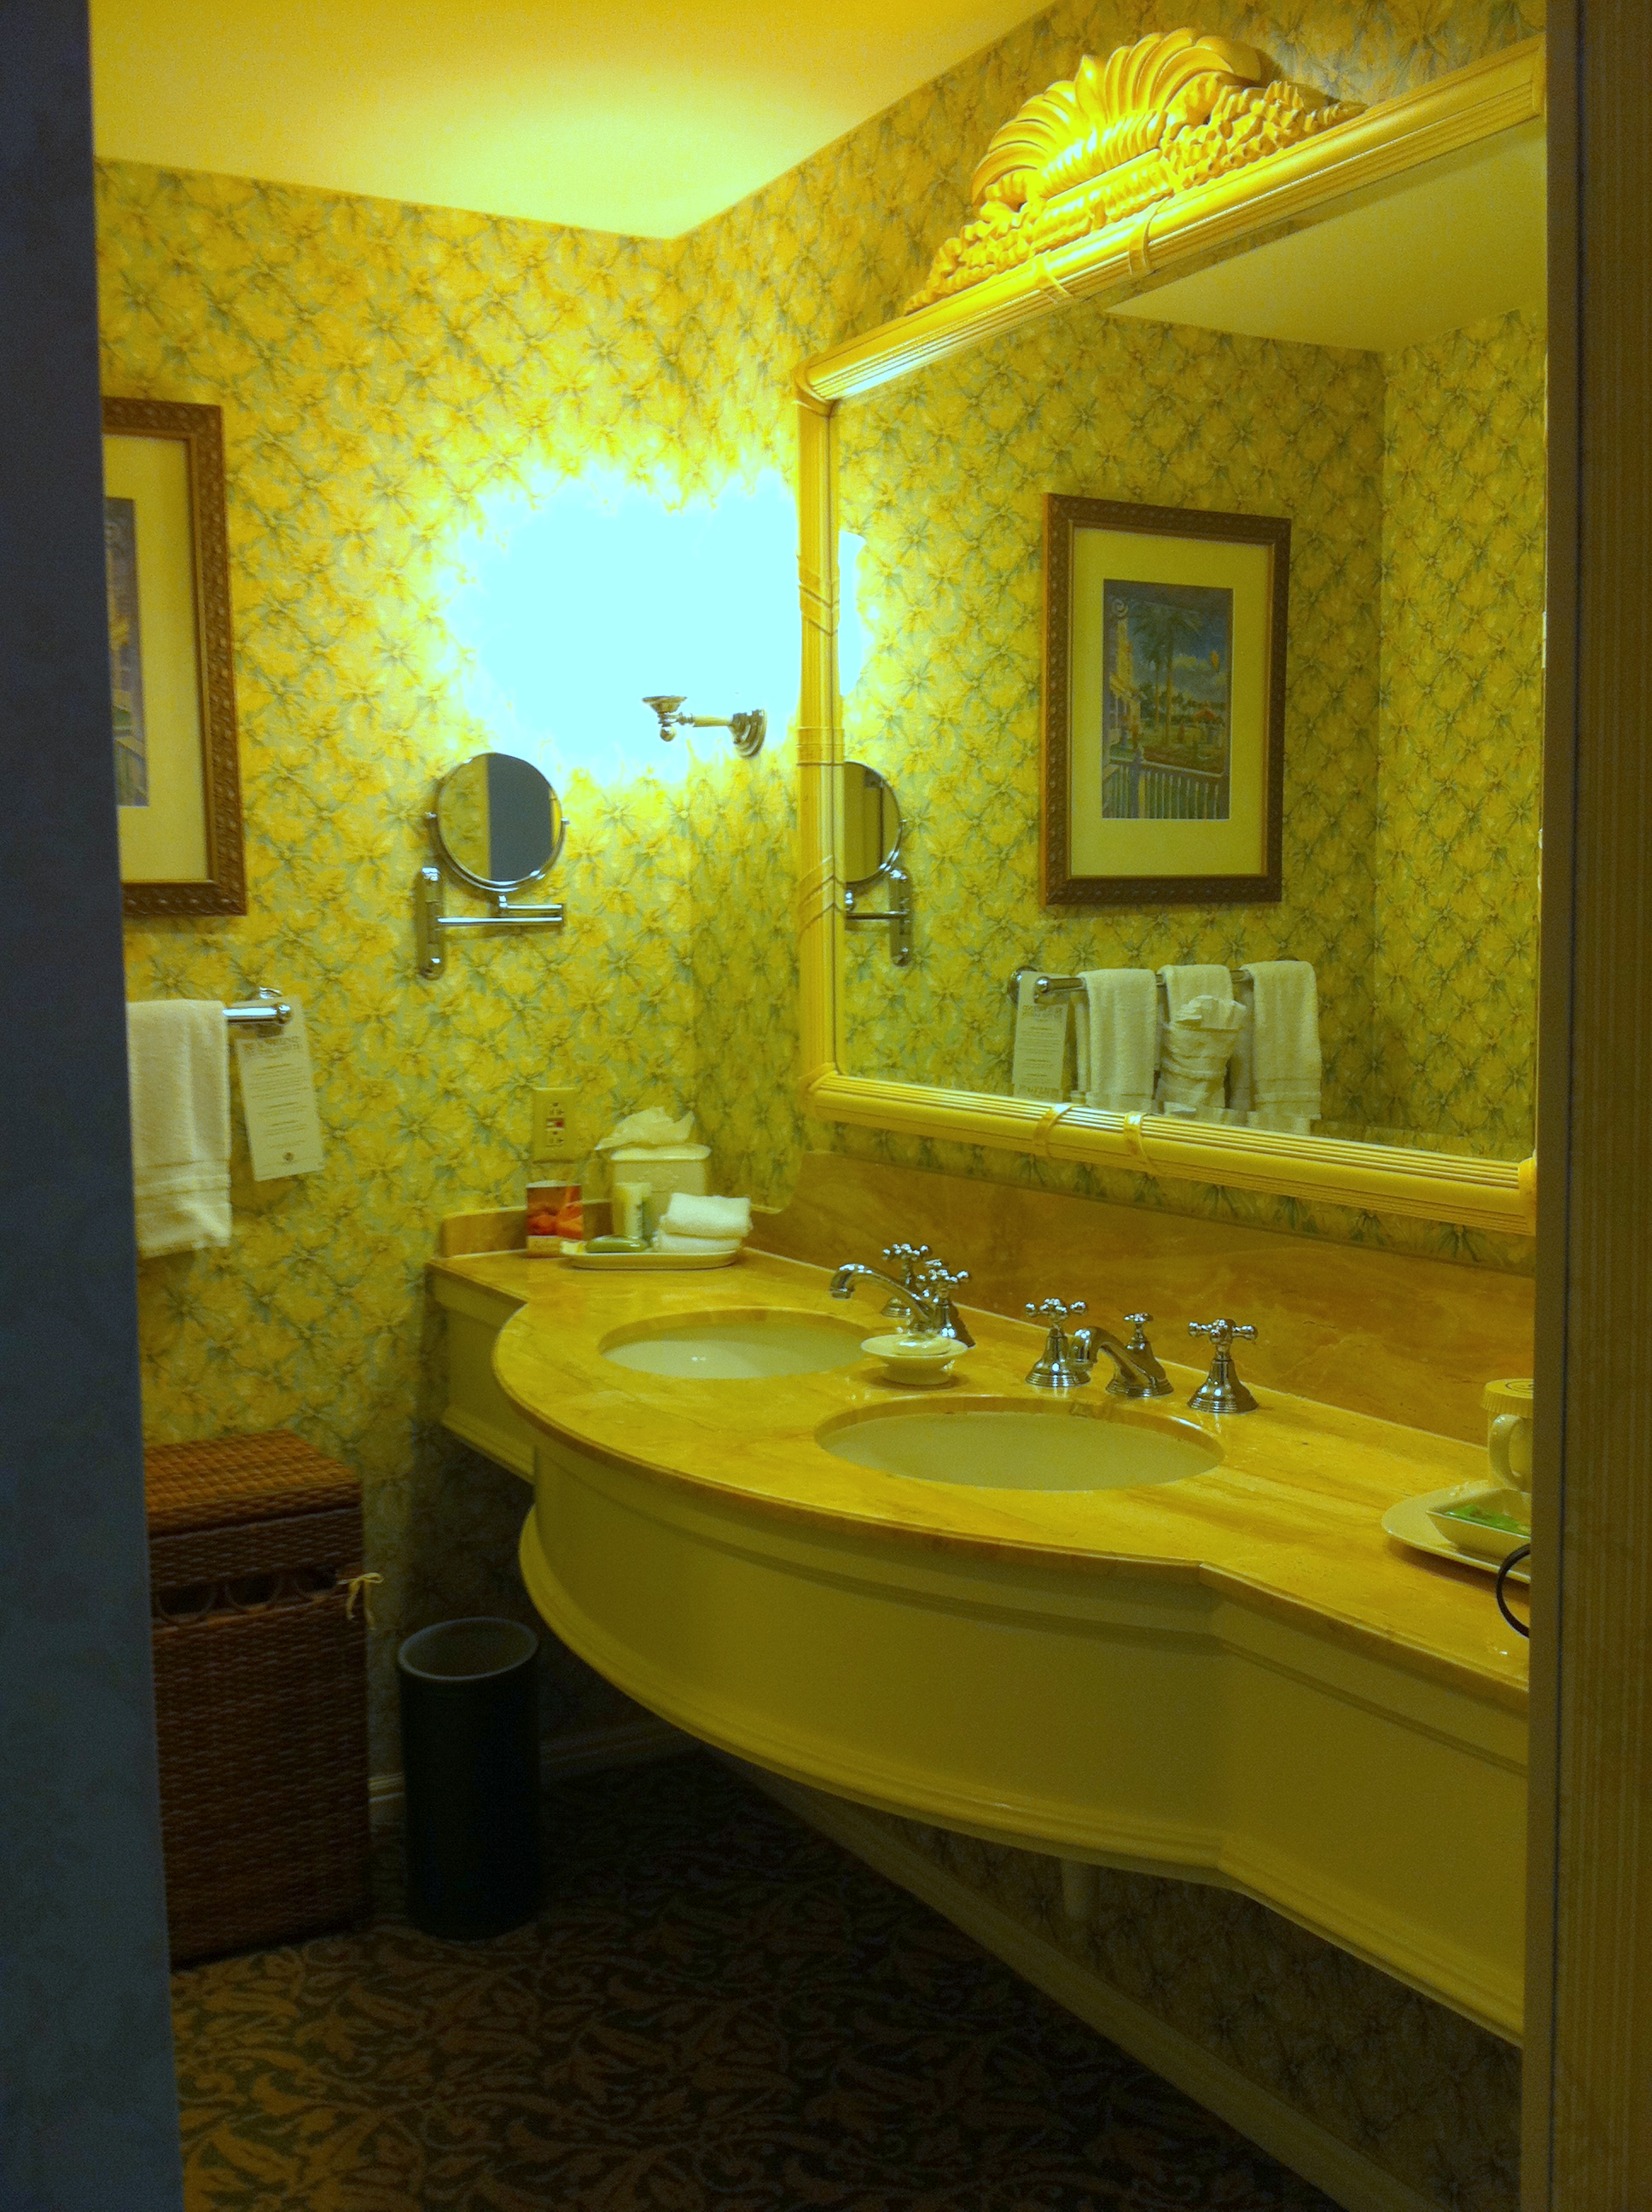 Our Stay at The Grand Floridian Resort and Spa at Walt Disney World ...